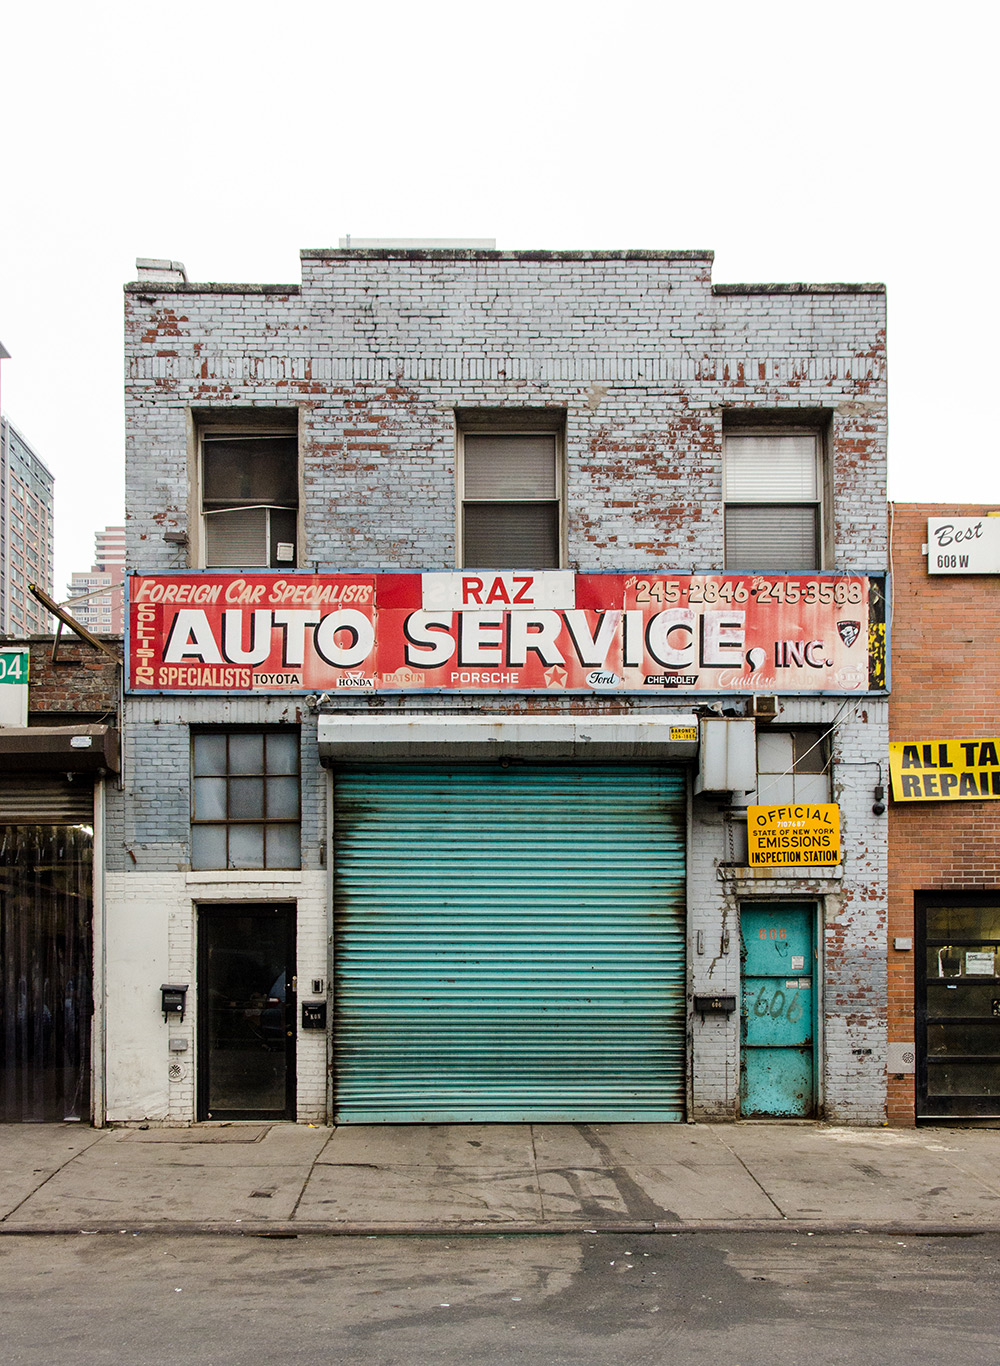 Raz Auto Service in Hell's Kitchen, New York City.